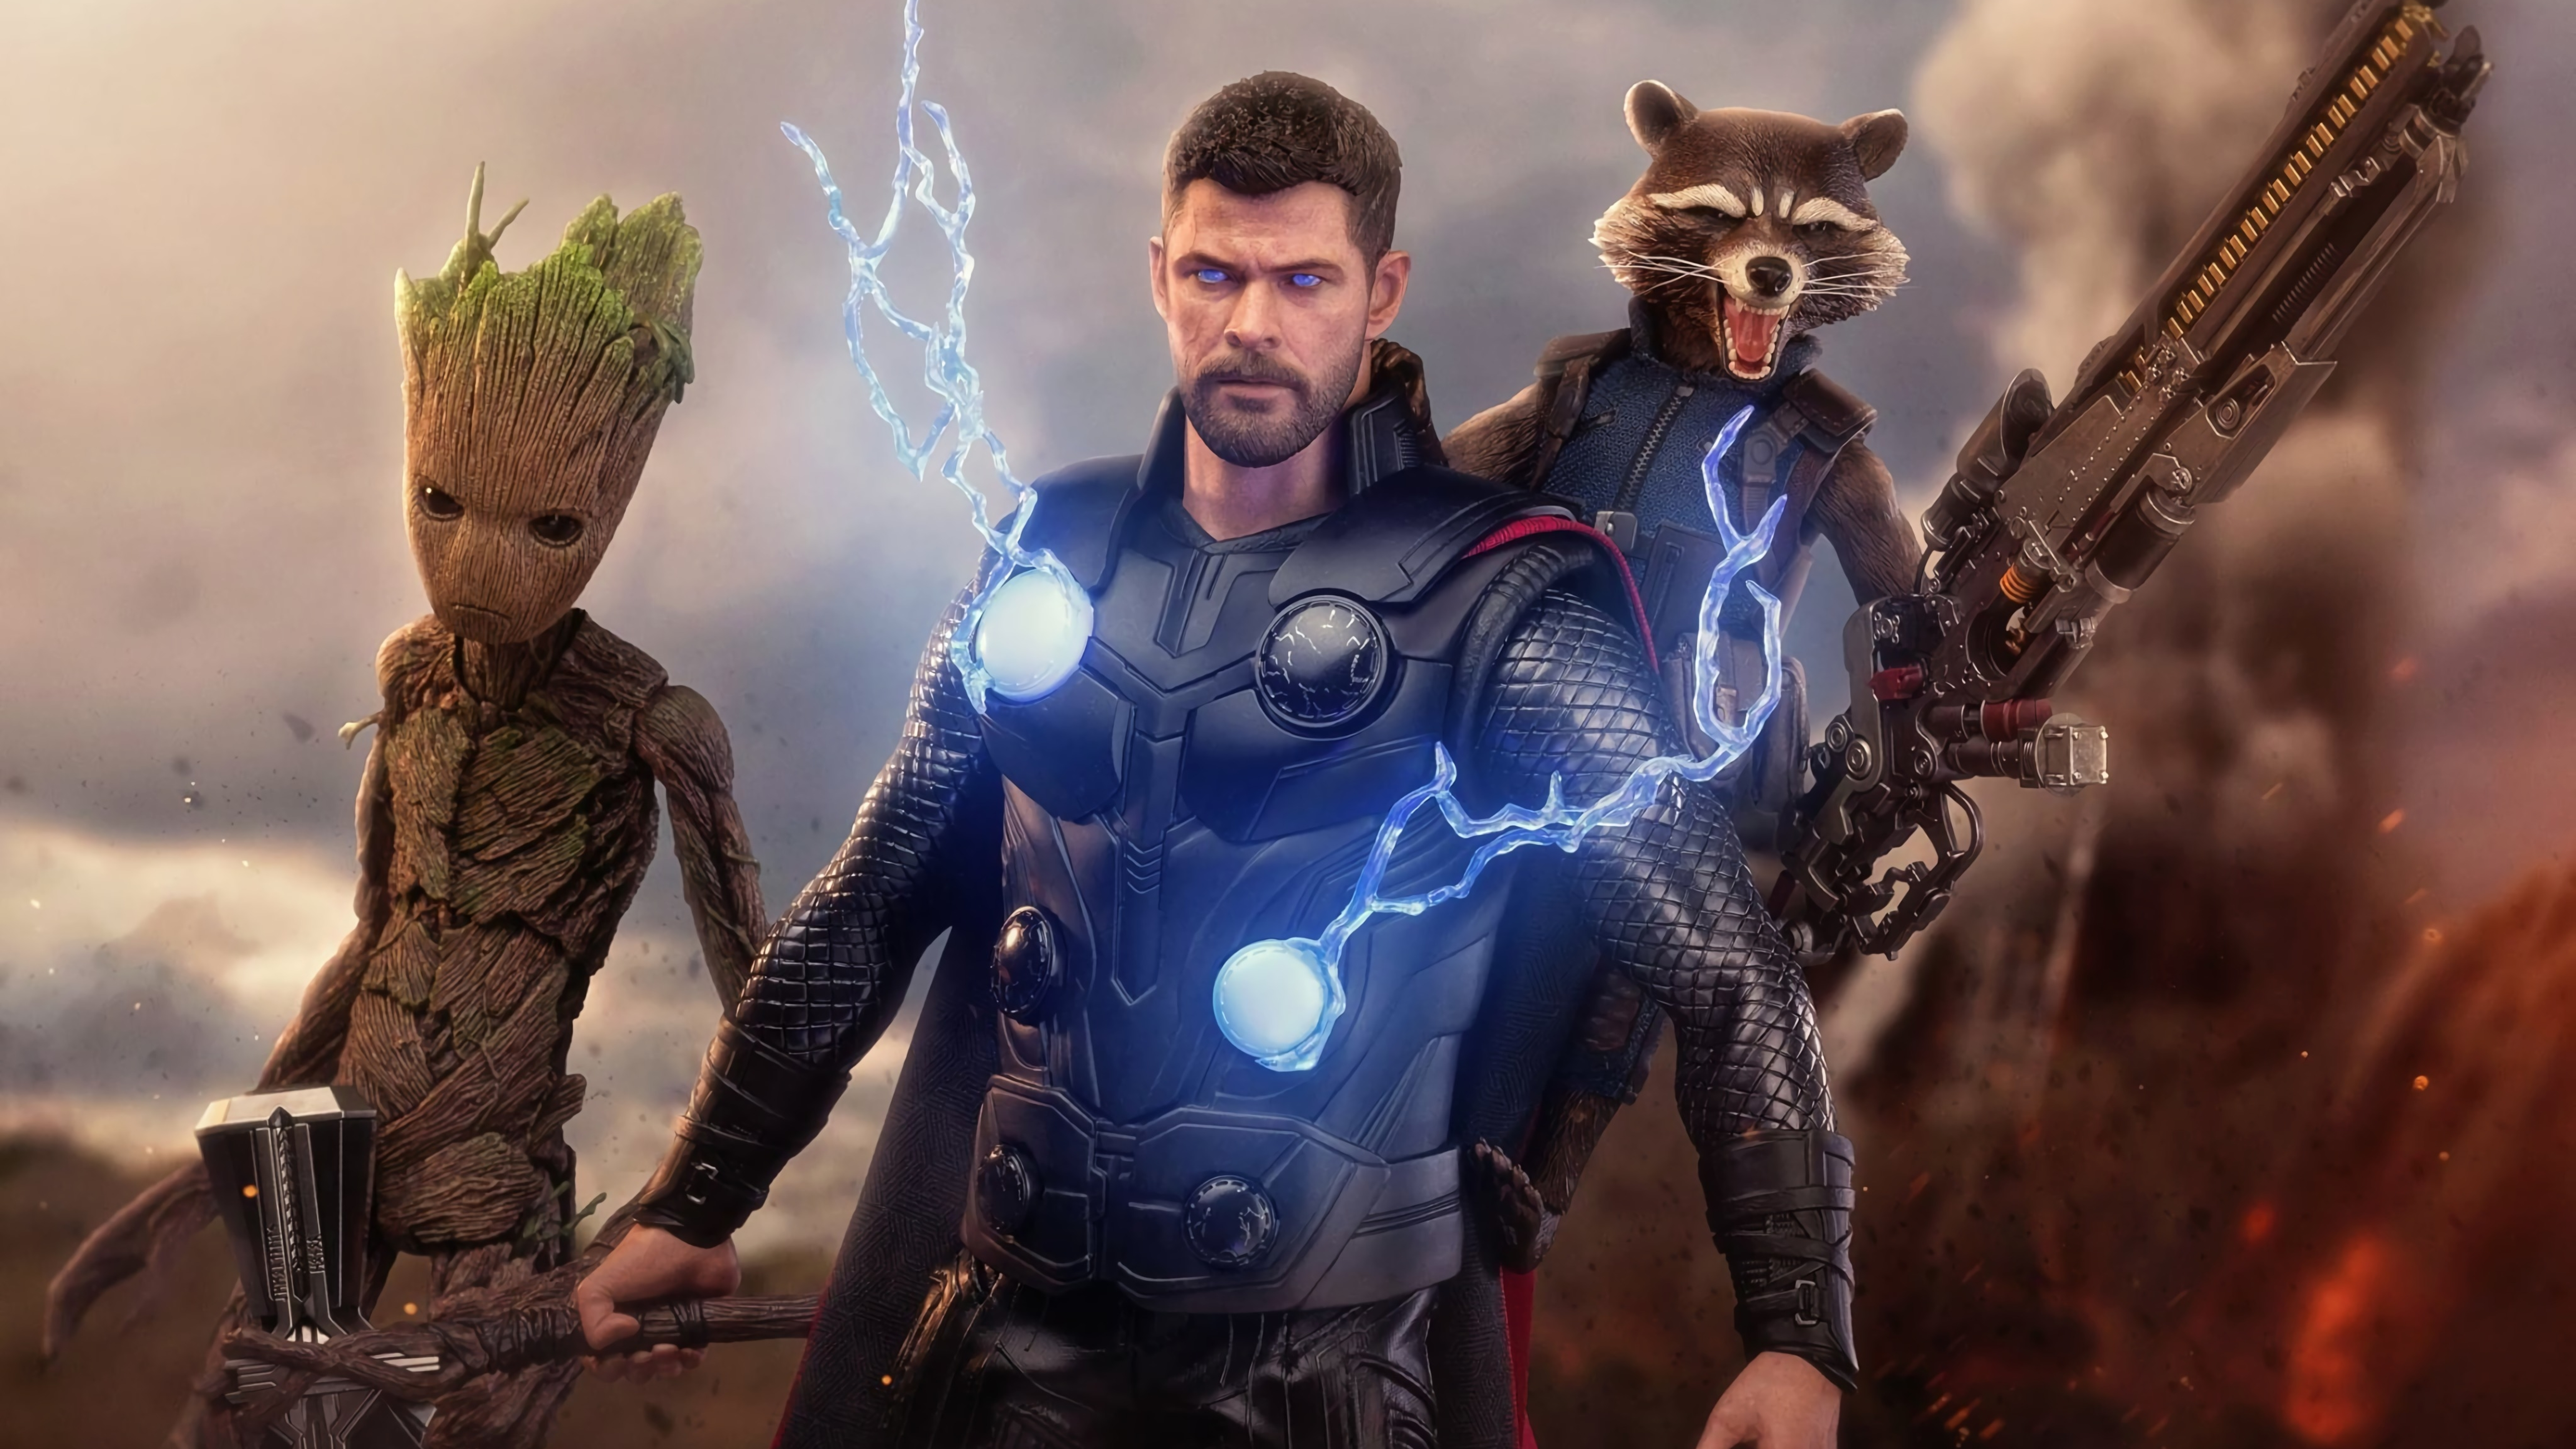 7680x4320 Thor Groot And Rocket 8k Wallpaper Hd Superheroes 4k Wallpapers Images Photos And Background